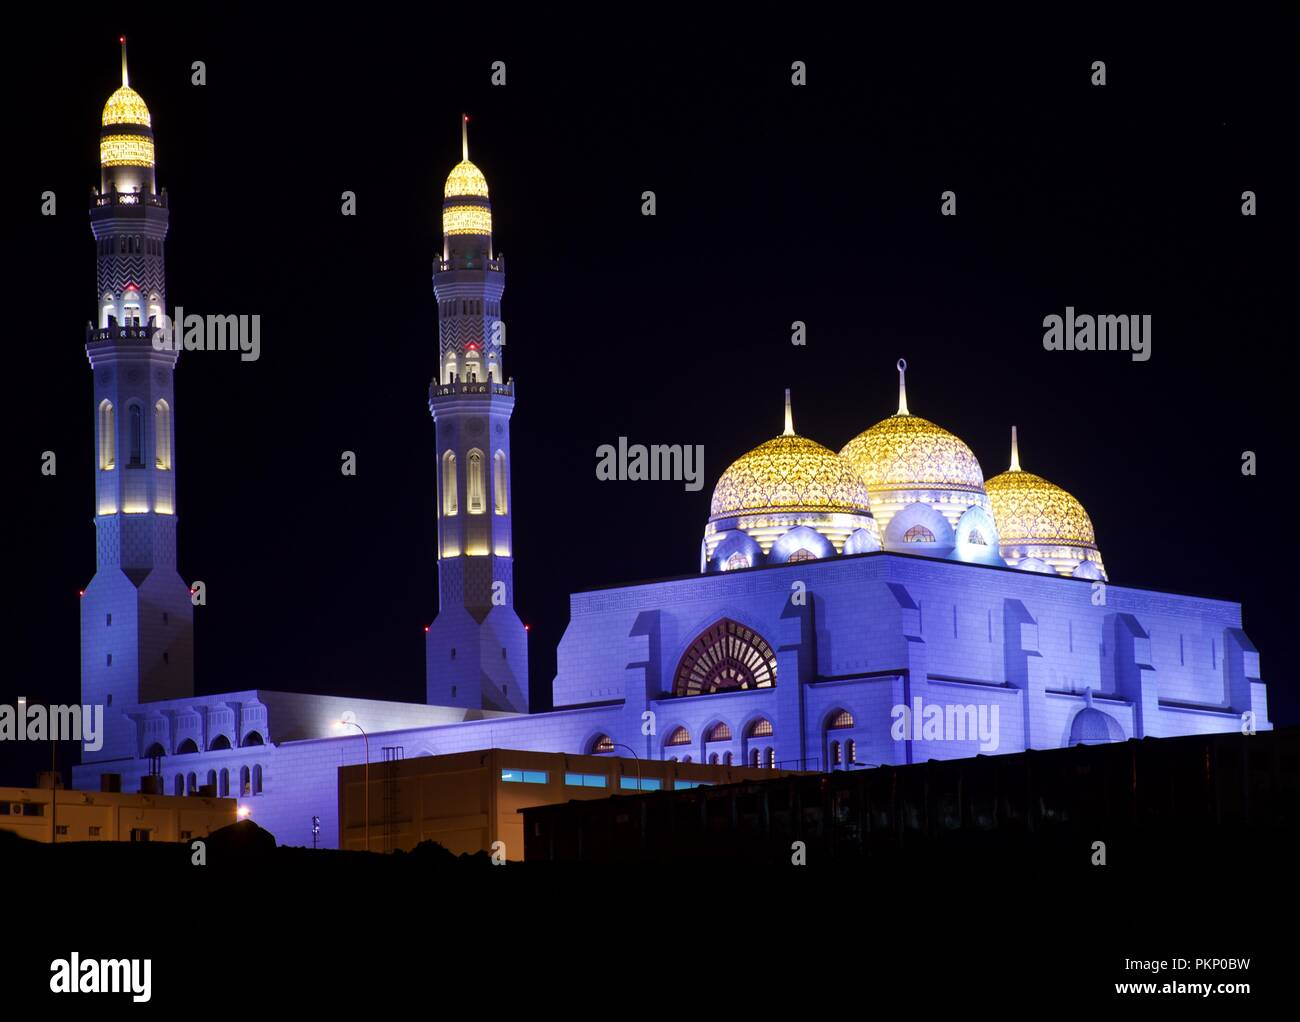 Al Ameen Mosque in Muscat, Oman shines boldly and brightly at night. - Stock Image